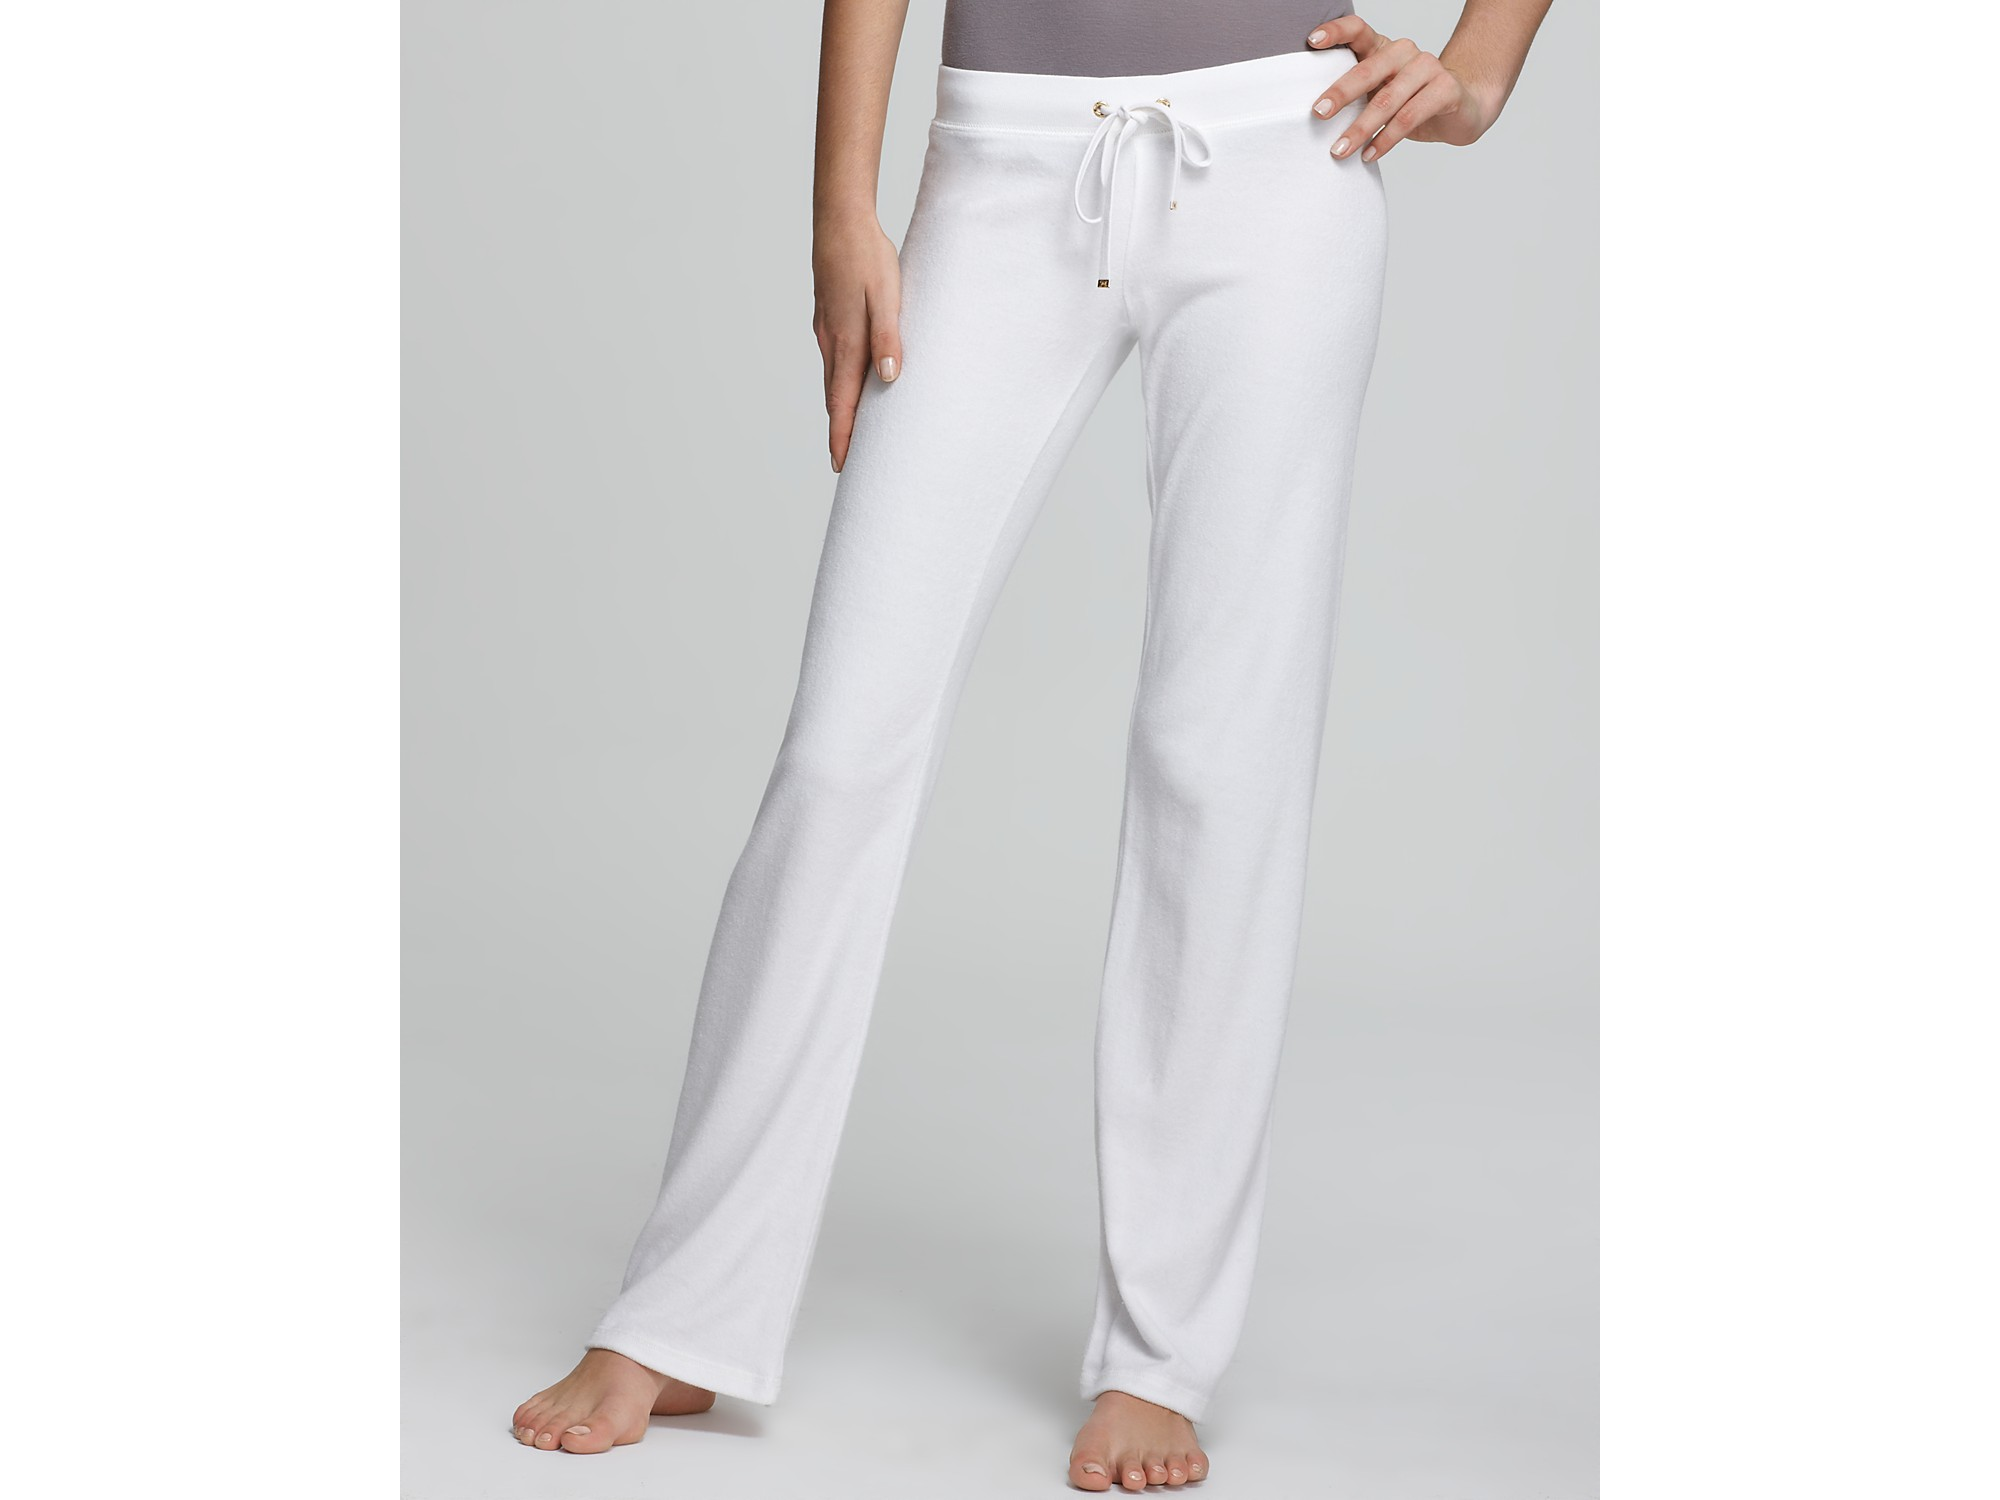 Lyst - Juicy Couture Terry Original Leg Drawstring Pants in White ea984f0a1dd7